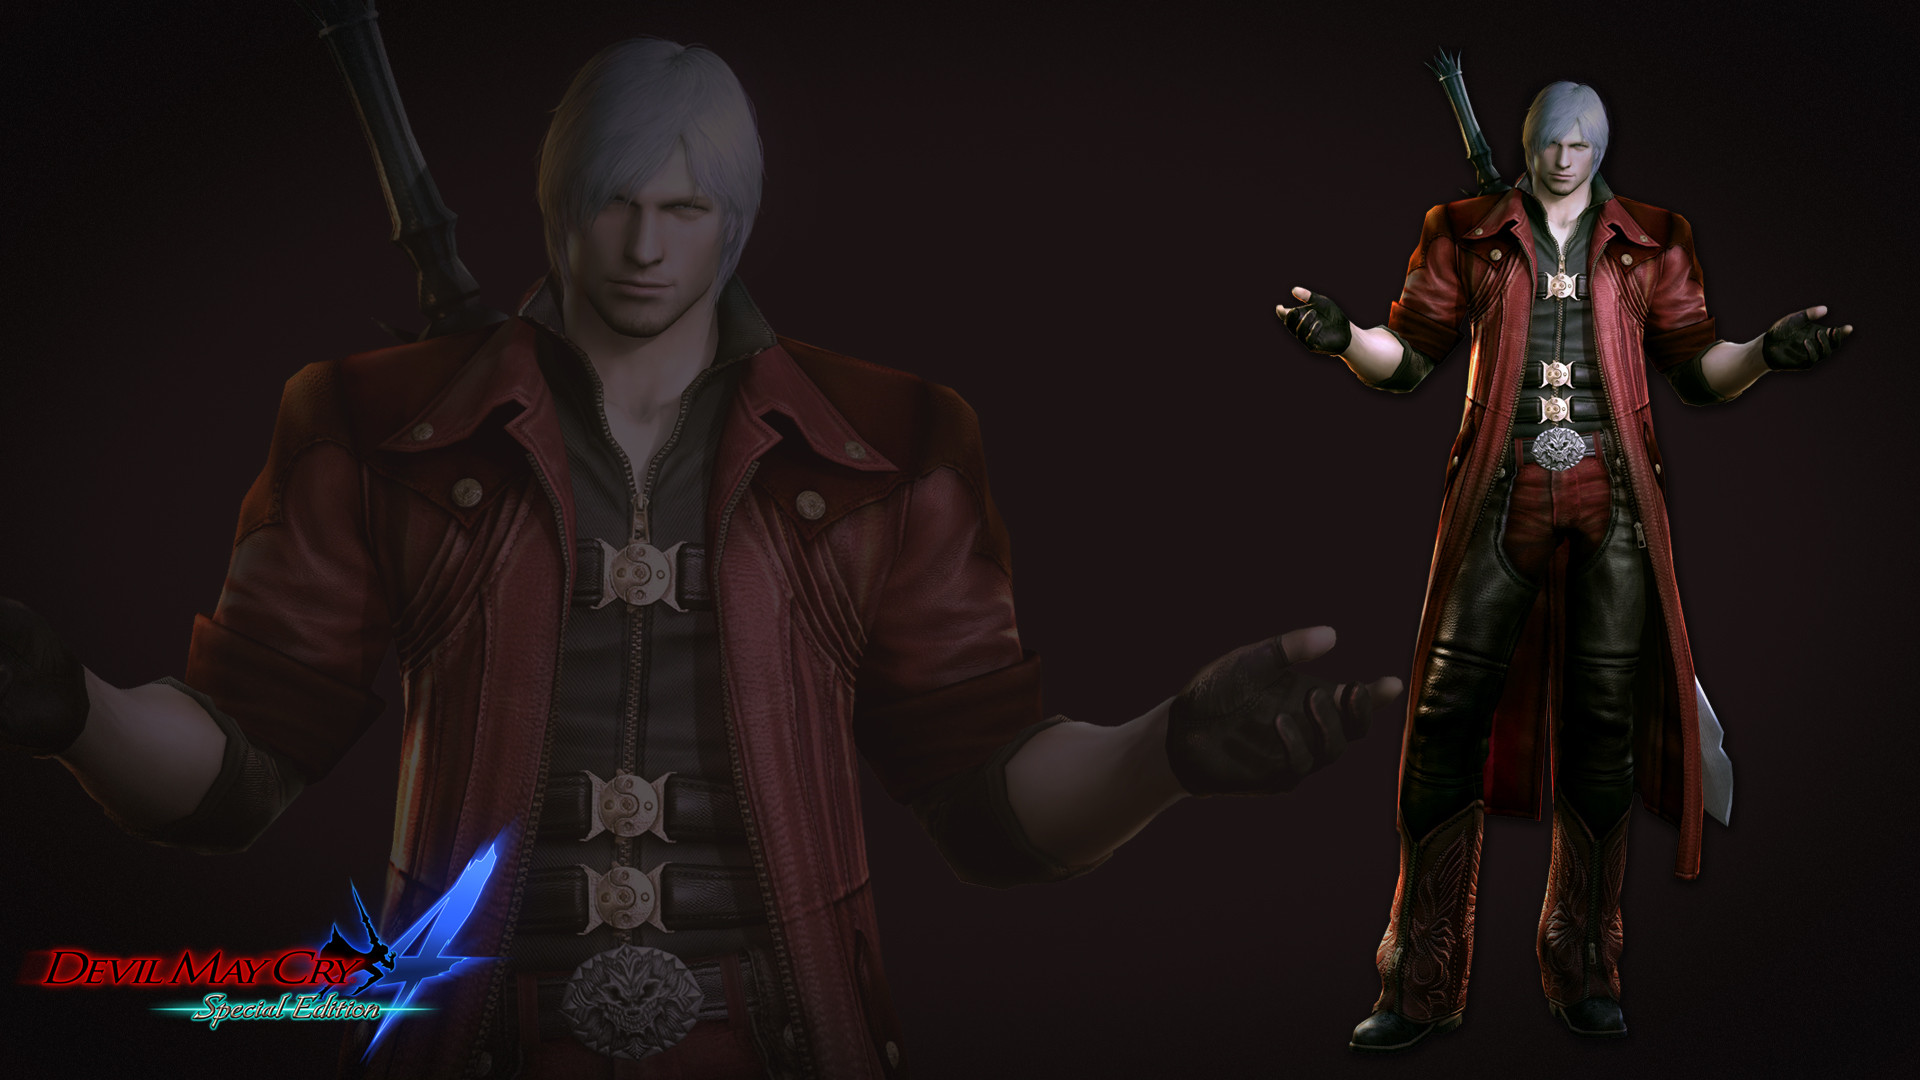 Devil May Cry 4 Hd Wallpaper Background Image 1920x1080 Id